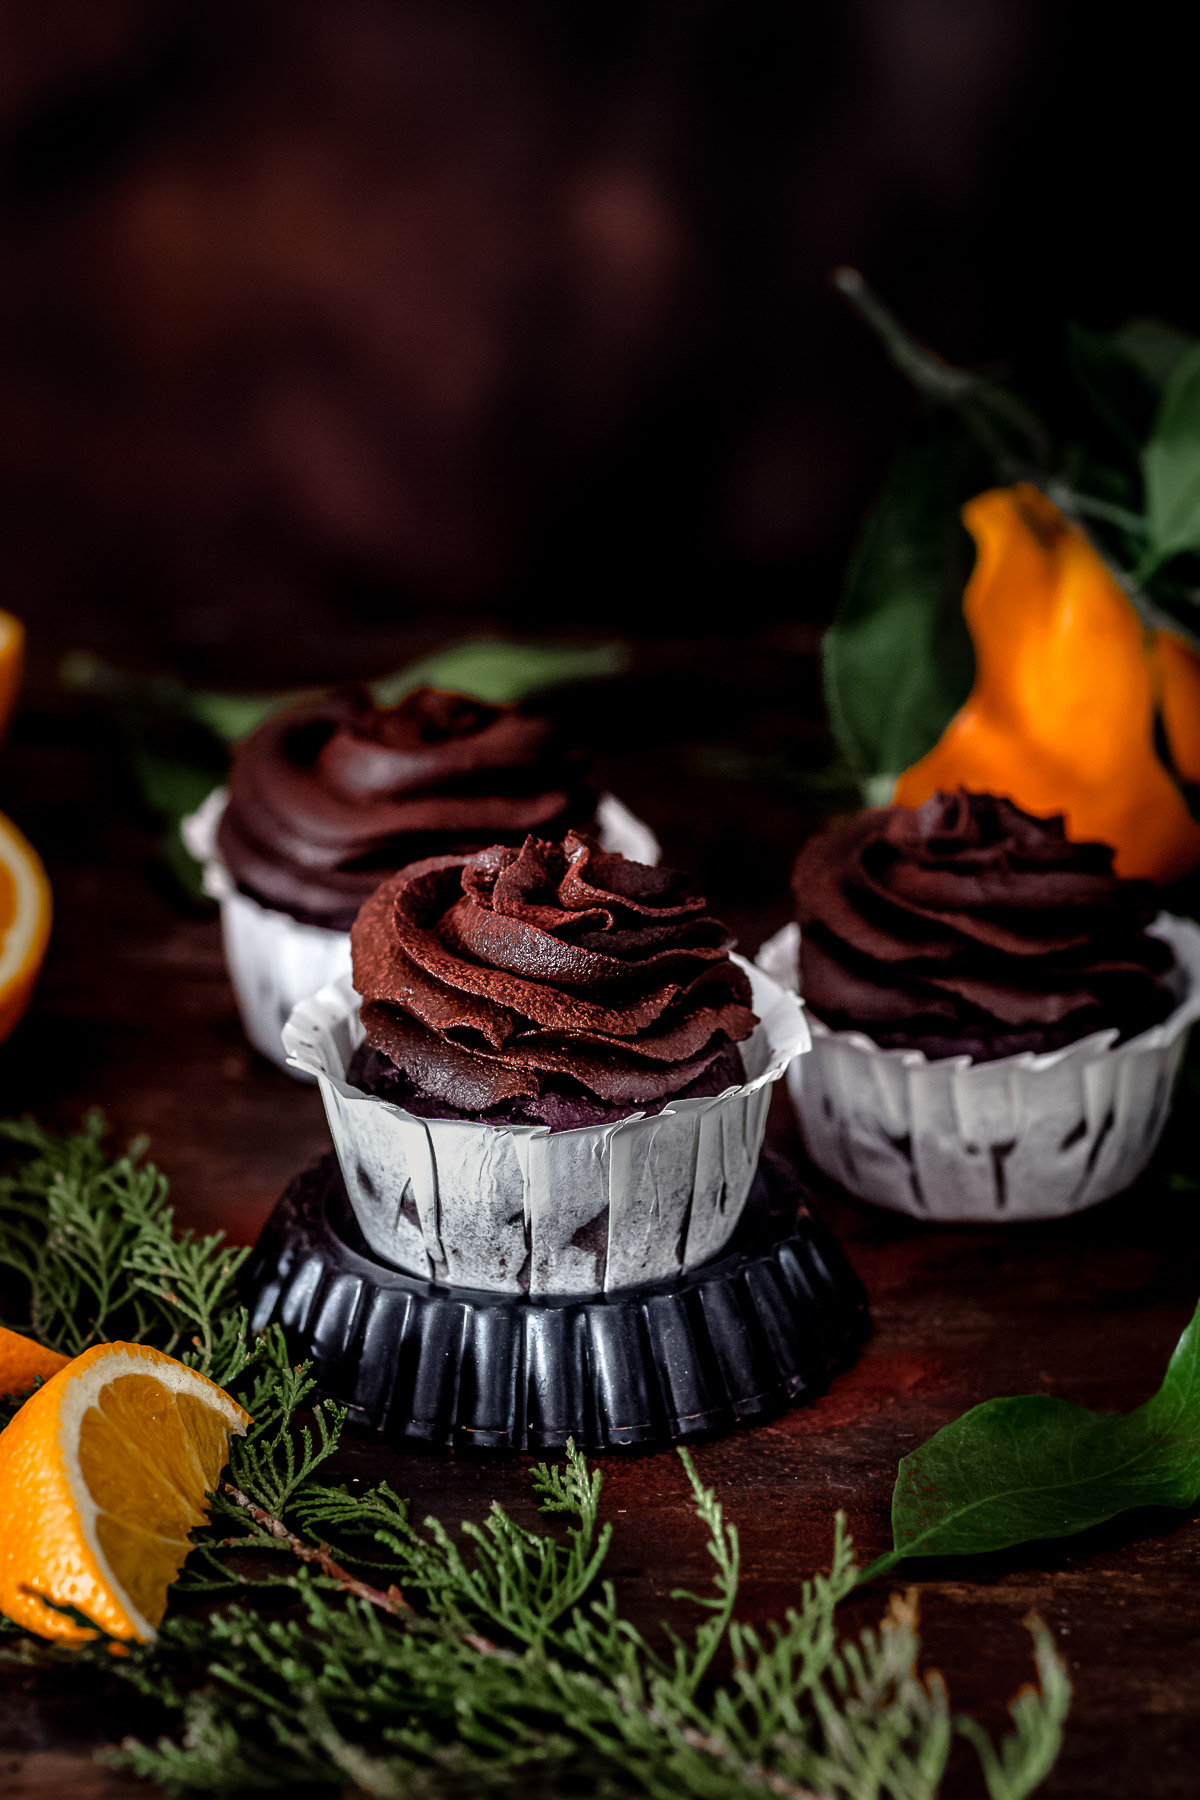 vegan CHOCOLATE PUMPKIN CUPCAKES with orange juice and PUMPKIN DATE CHOCOLATE frosting ricetta CUPCAKES VEGAN al CIOCCOLATO ARANCIA e ZUCCA con mousse al cioccolato datteri